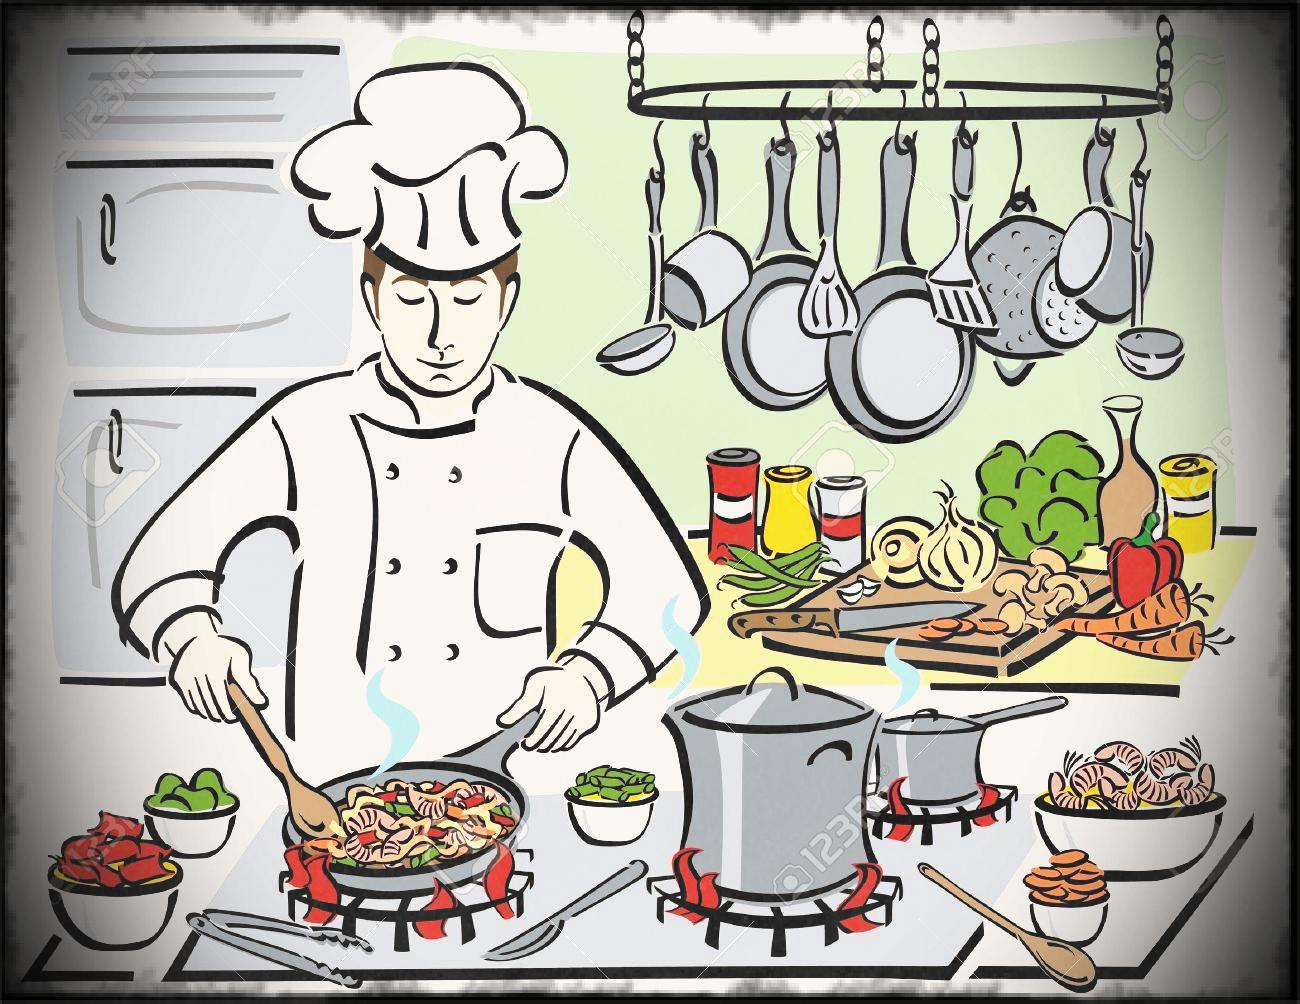 Chef kitchen clipart banner black and white download Chef clipart kitchen chef, Chef kitchen chef Transparent FREE for ... banner black and white download